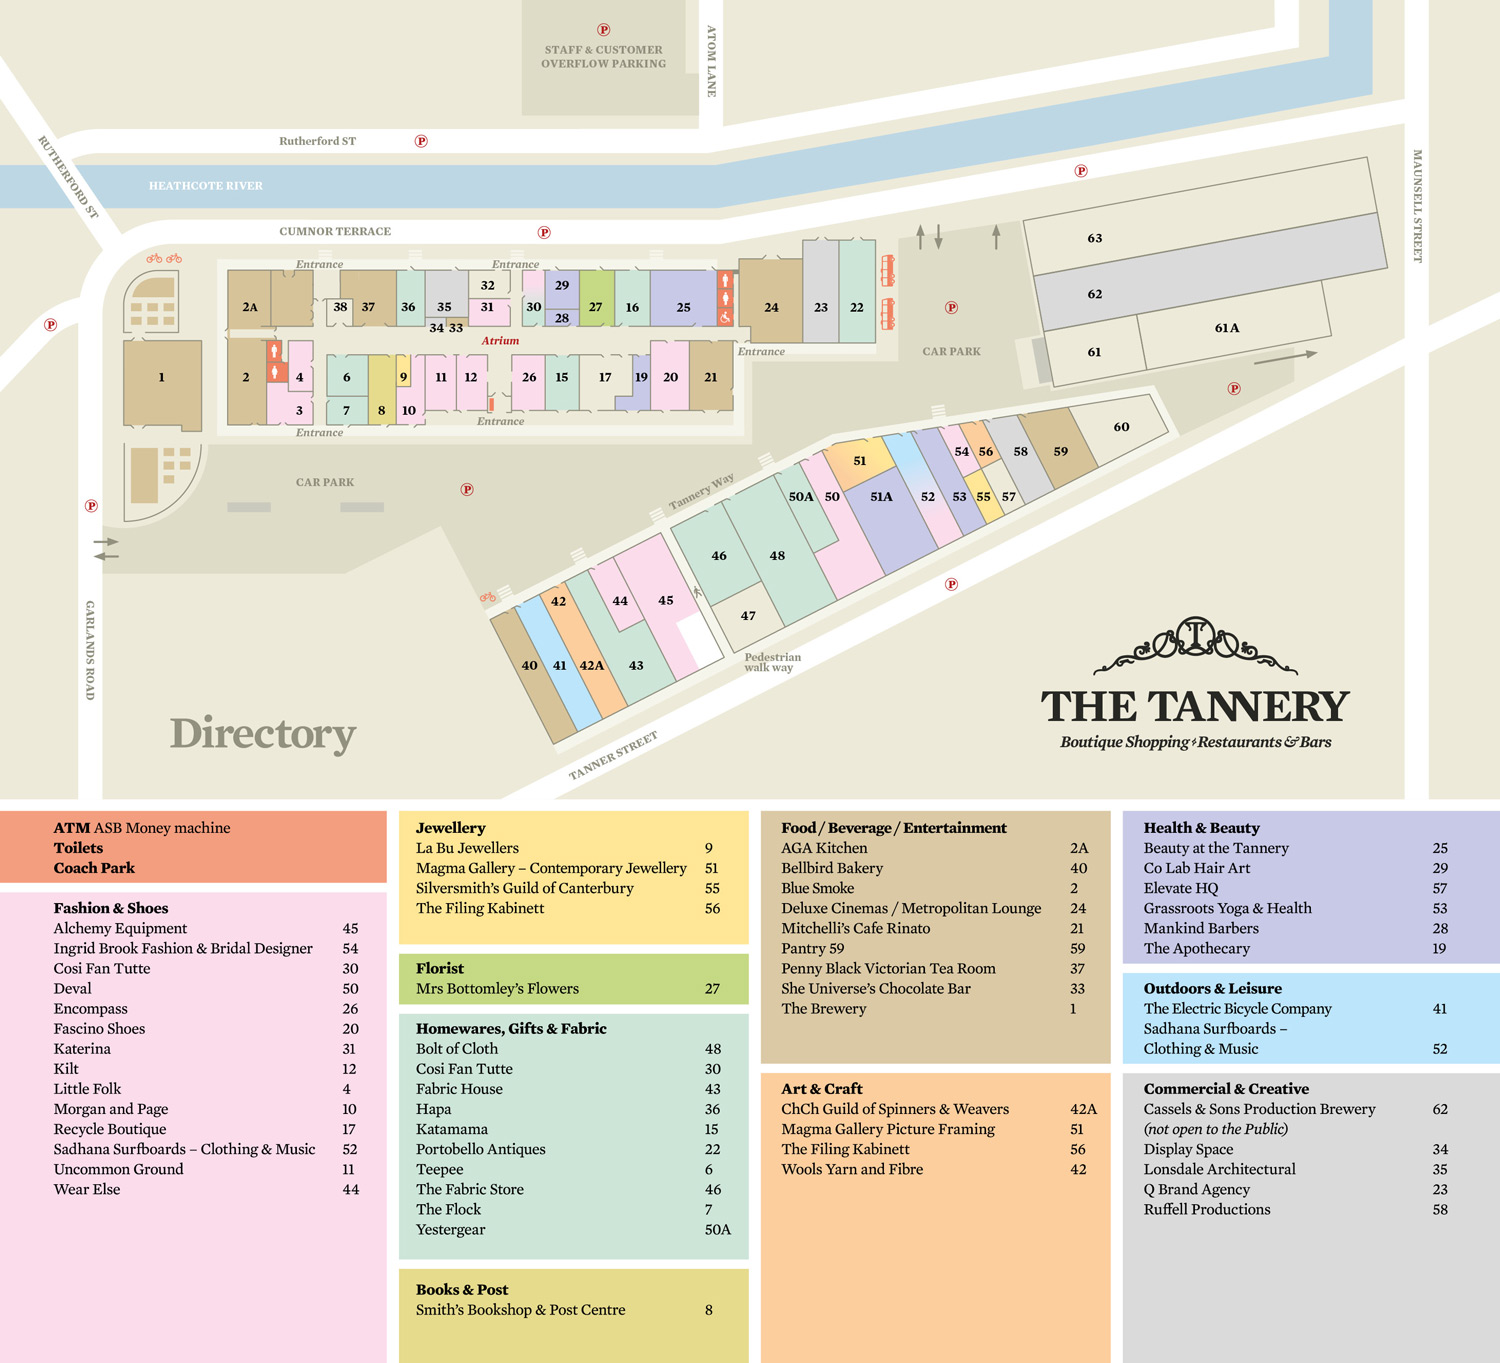 Store Directory - Shopping at The Tannery